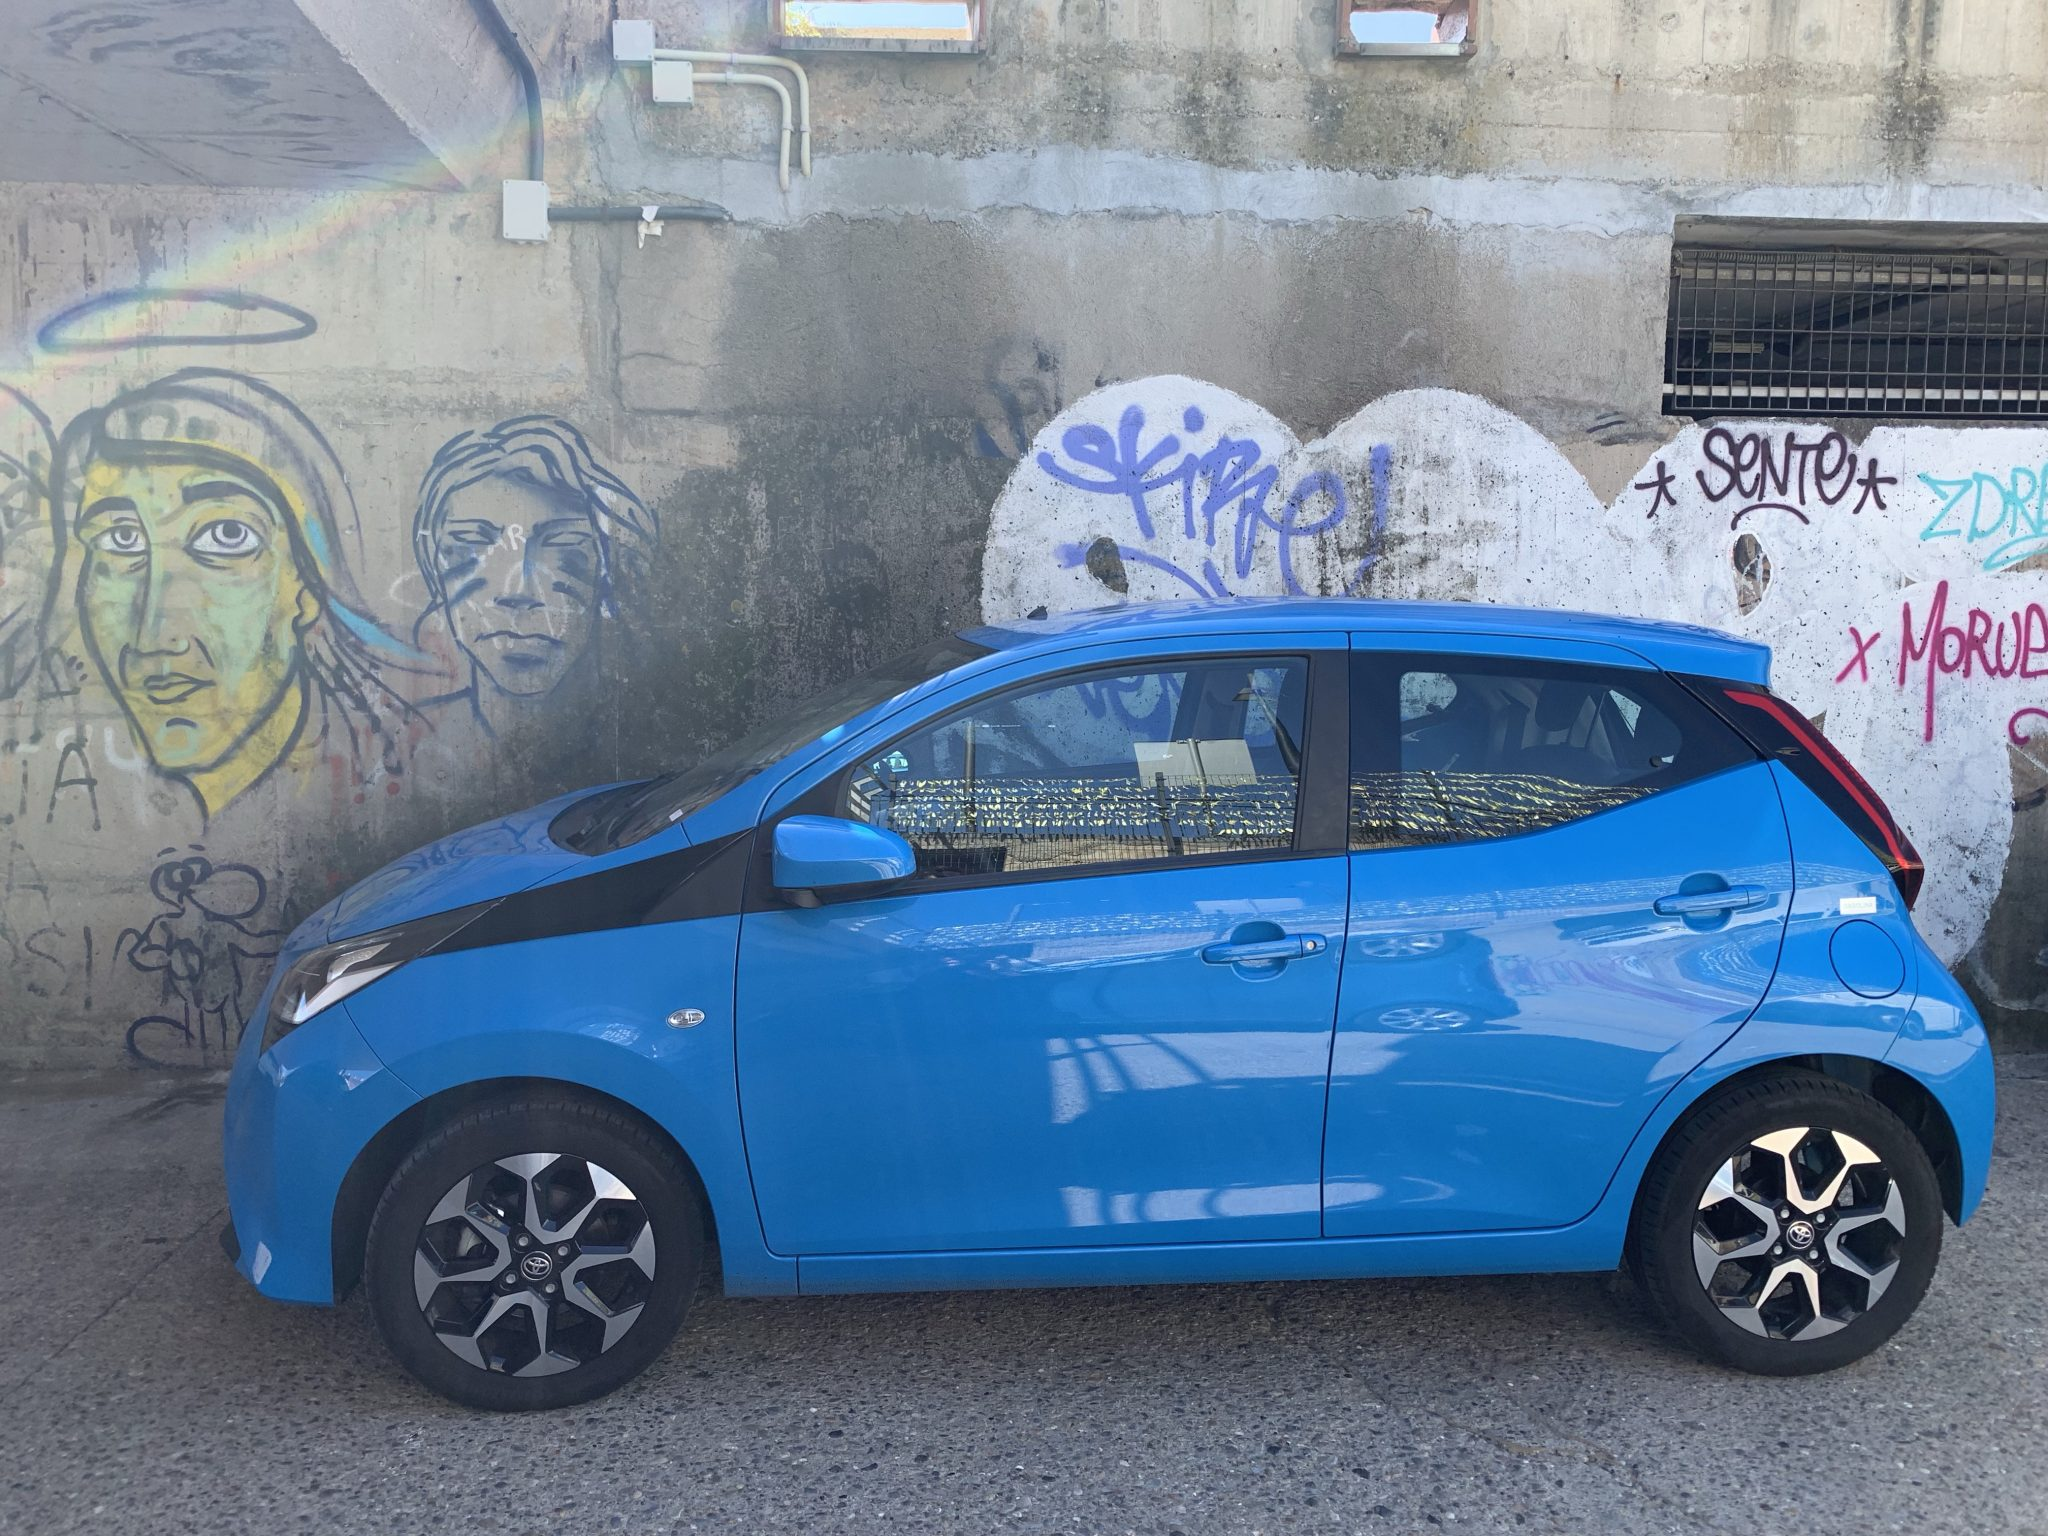 Small blue car in front of graffiti wall.